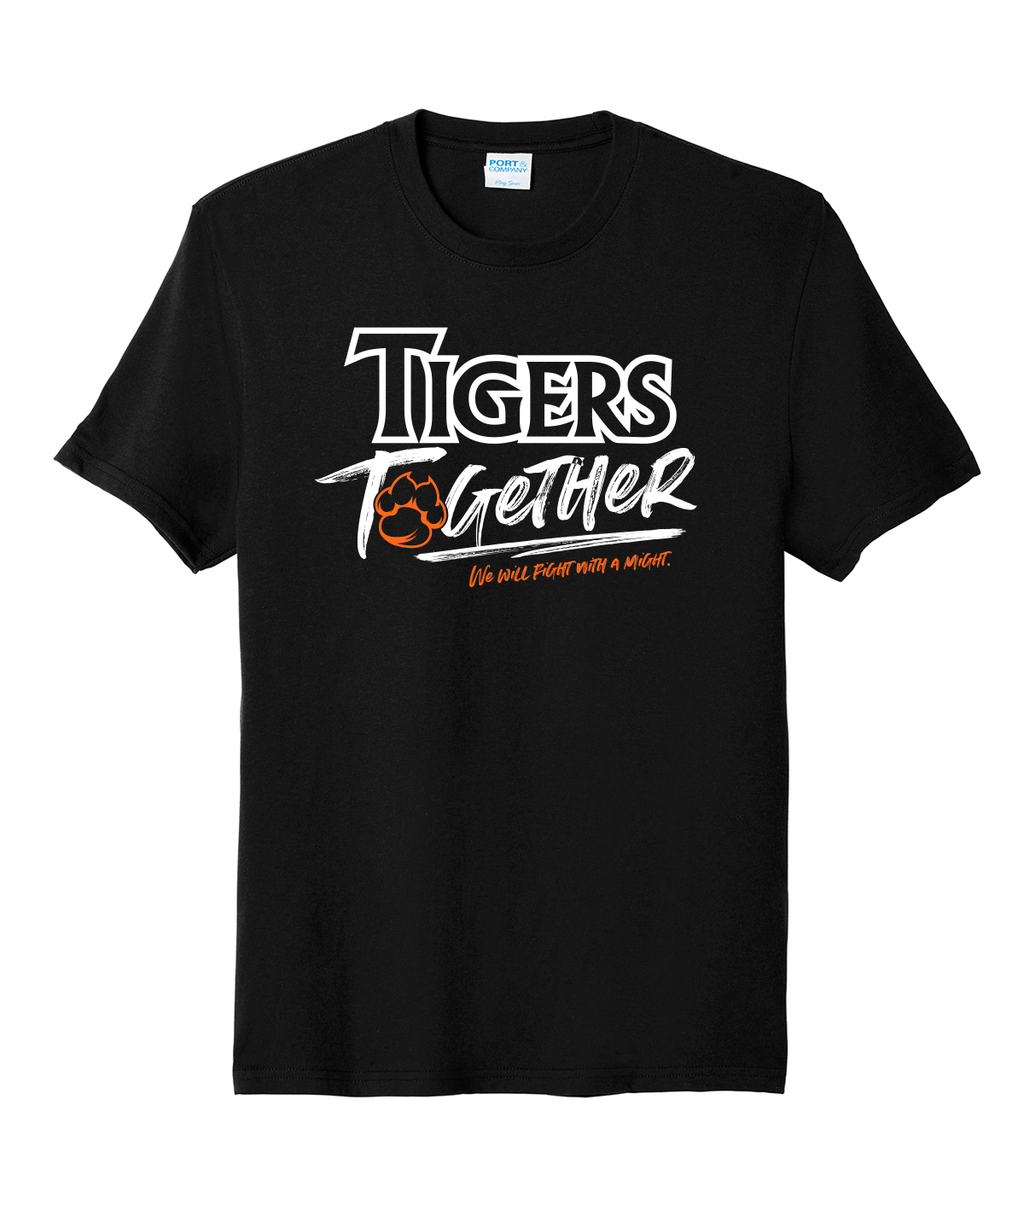 Hillside Tigers Together Youth Black Softstyle Tee